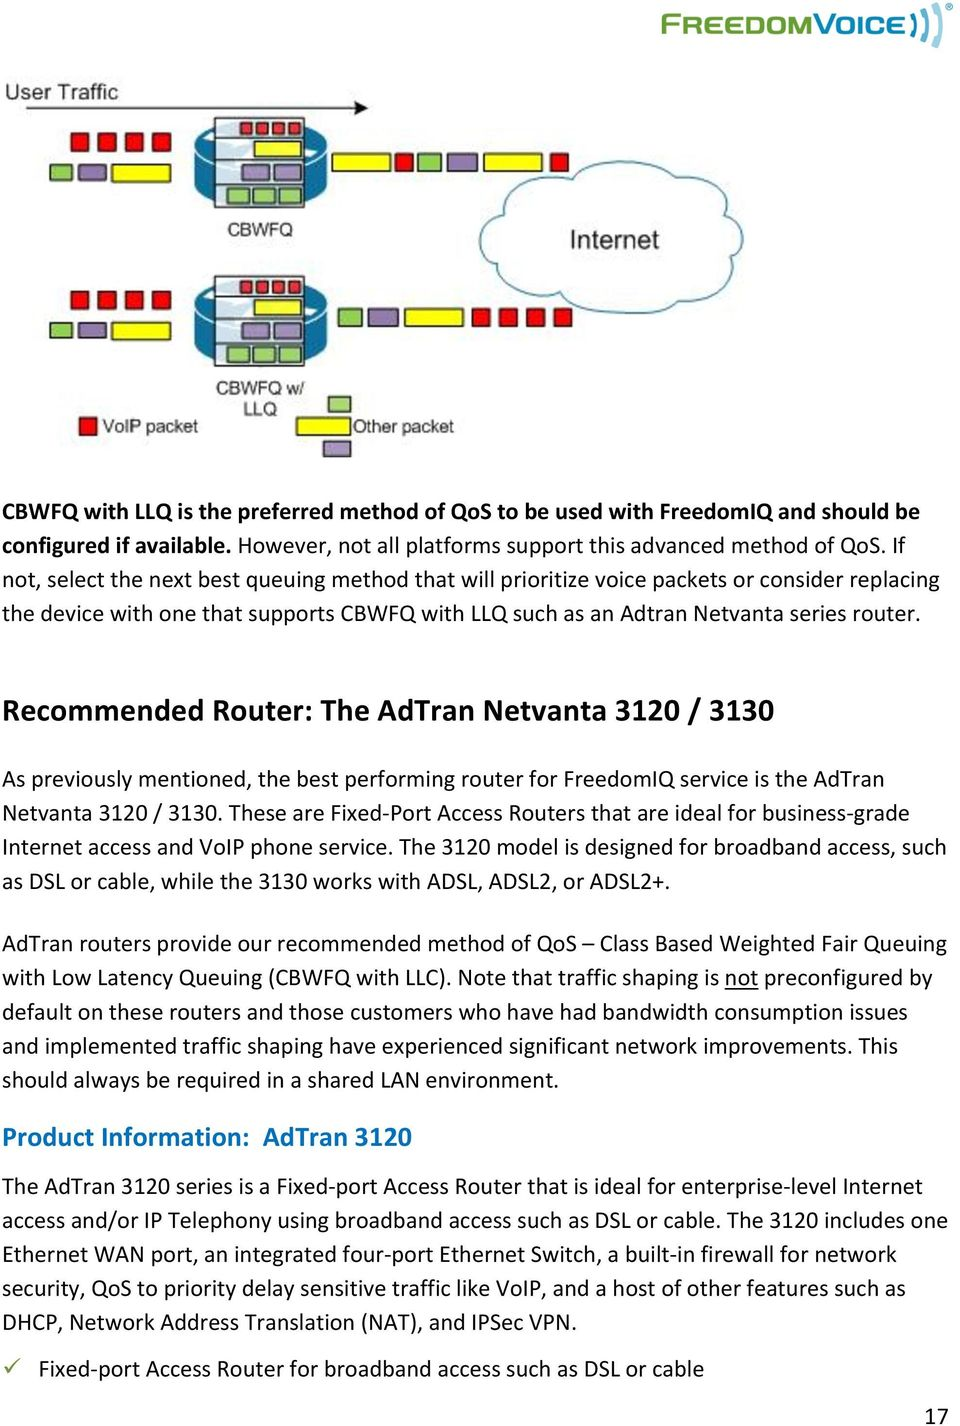 Recommended Router: The AdTran Netvanta 3120 / 3130 As previously mentioned, the best performing router for FreedomIQ service is the AdTran Netvanta 3120 / 3130.